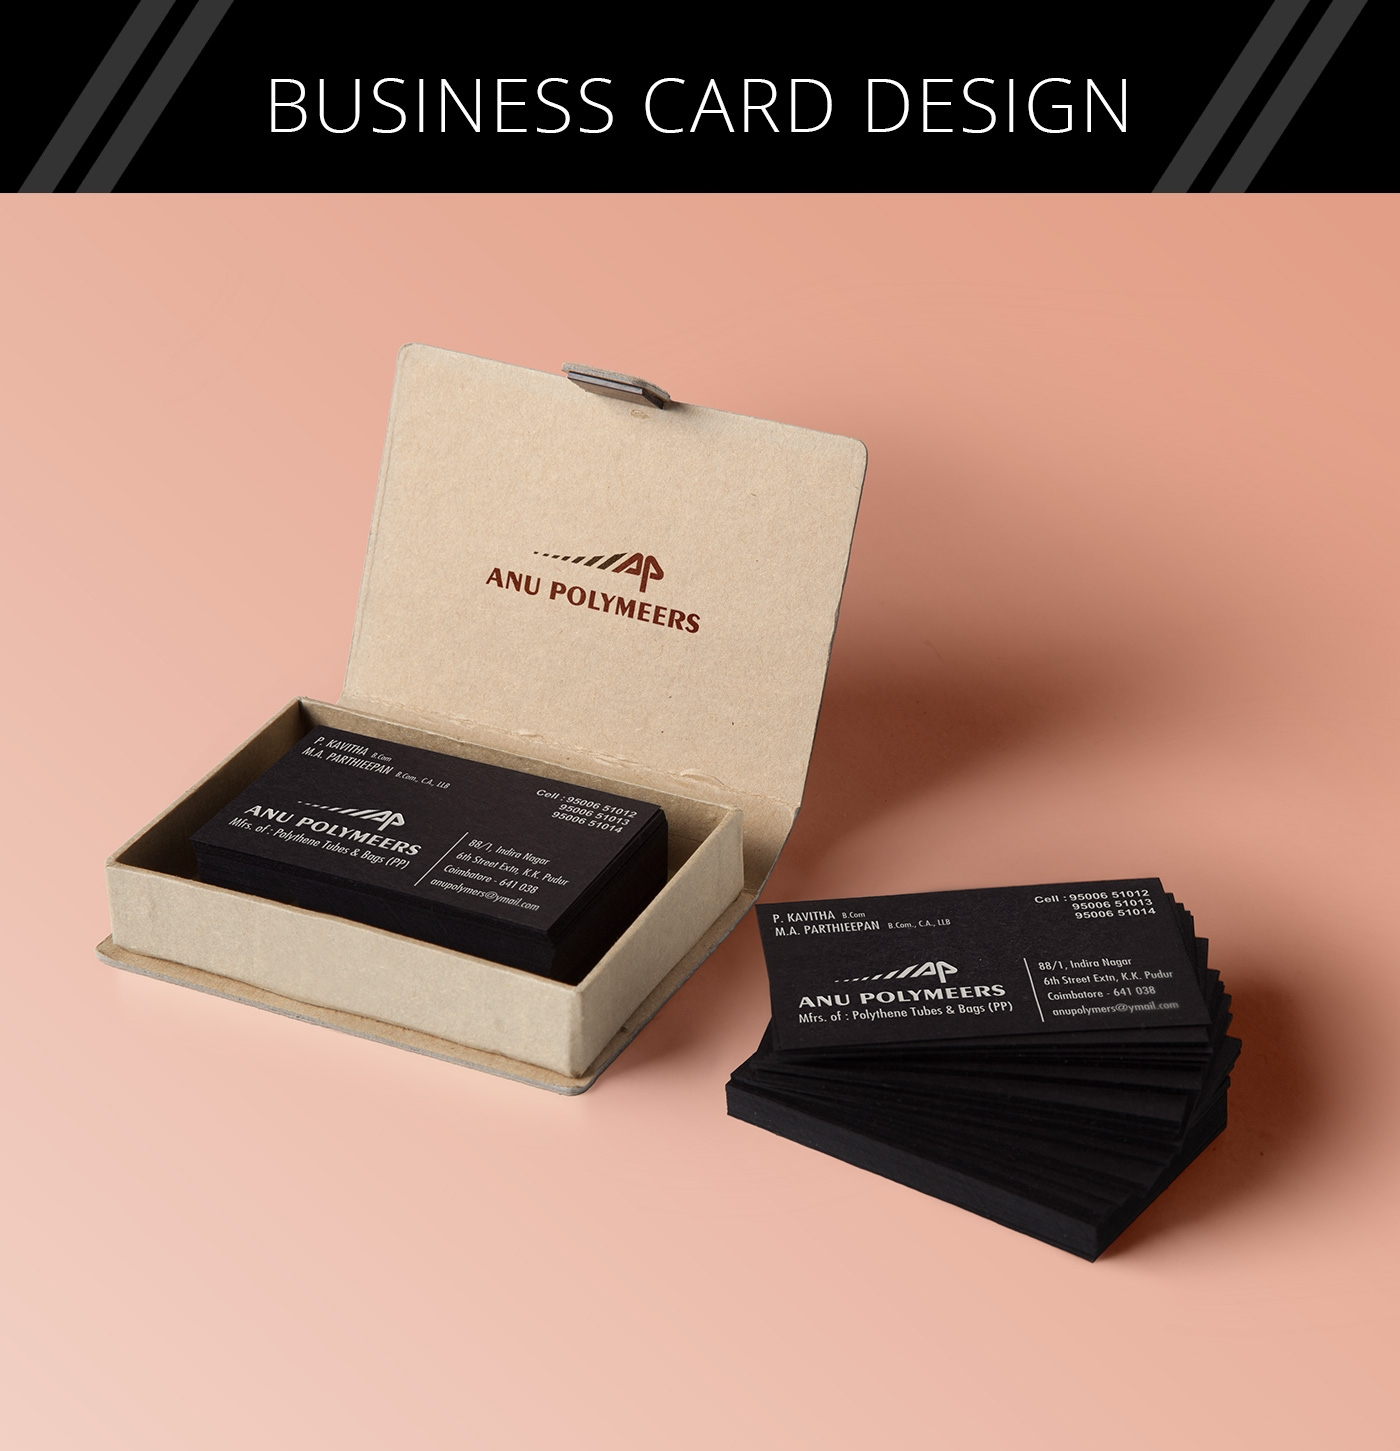 24 corporate business card designs psd vector eps jpg for Business card design online free